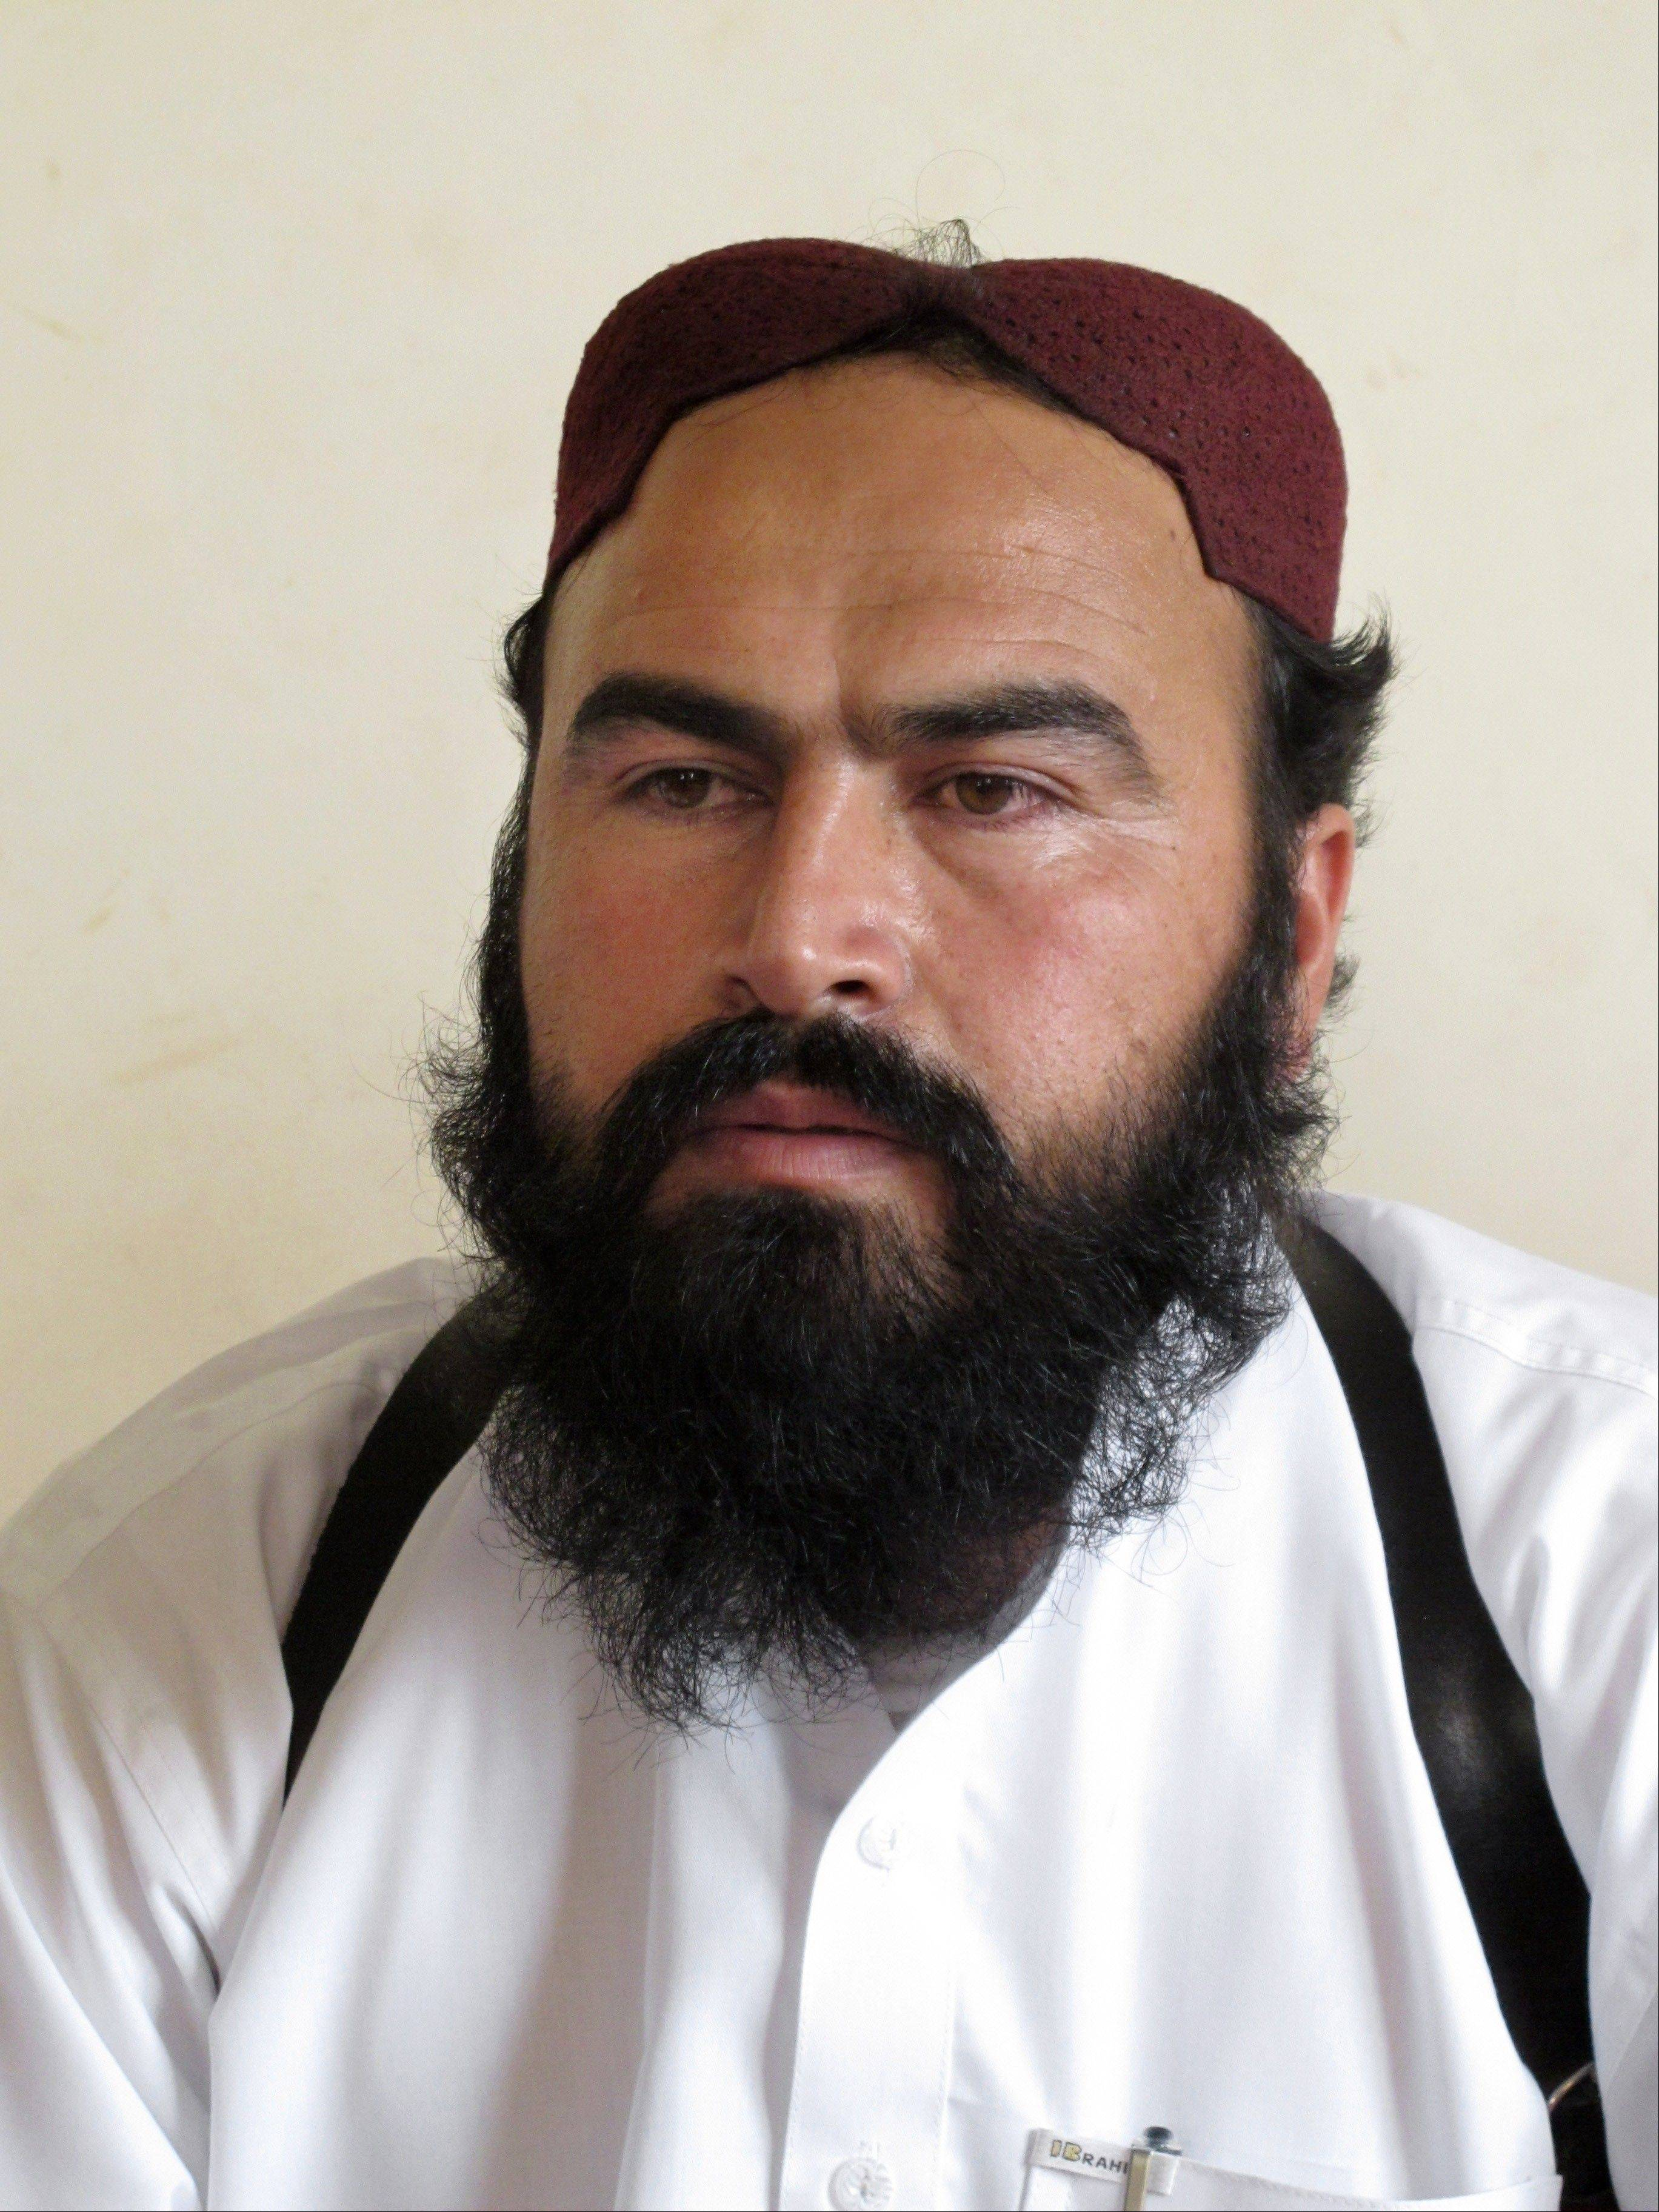 Associated Press File Photo, 2011 Taliban No. 2 commander Waliur Rehman. Pakistani intelligence officials say the Pakistani Taliban�s deputy leader was buried hours after he was killed in a U.S. drone strike.